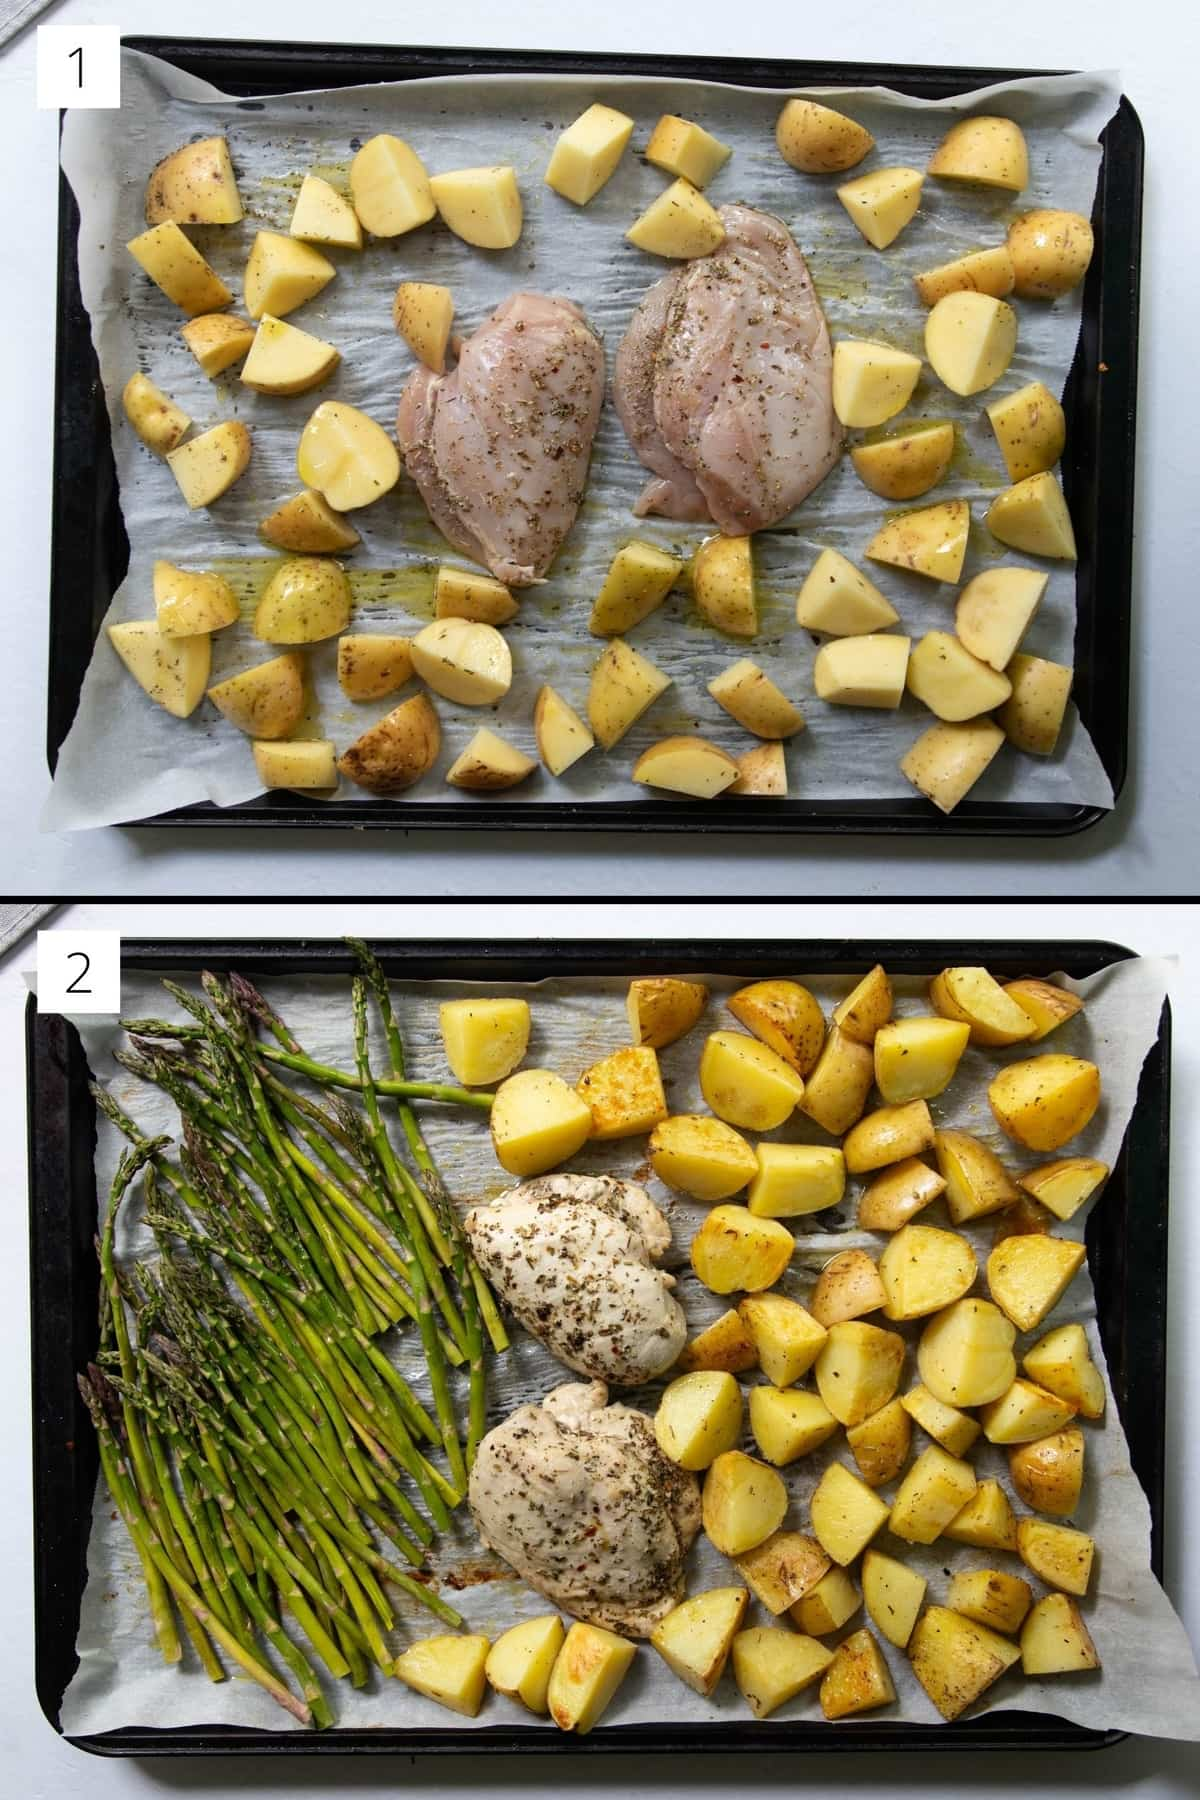 Collage showing the raw chicken and potatoes alone on a sheet pan, then the potatoes and chicken partially cooked with the asparagus added.